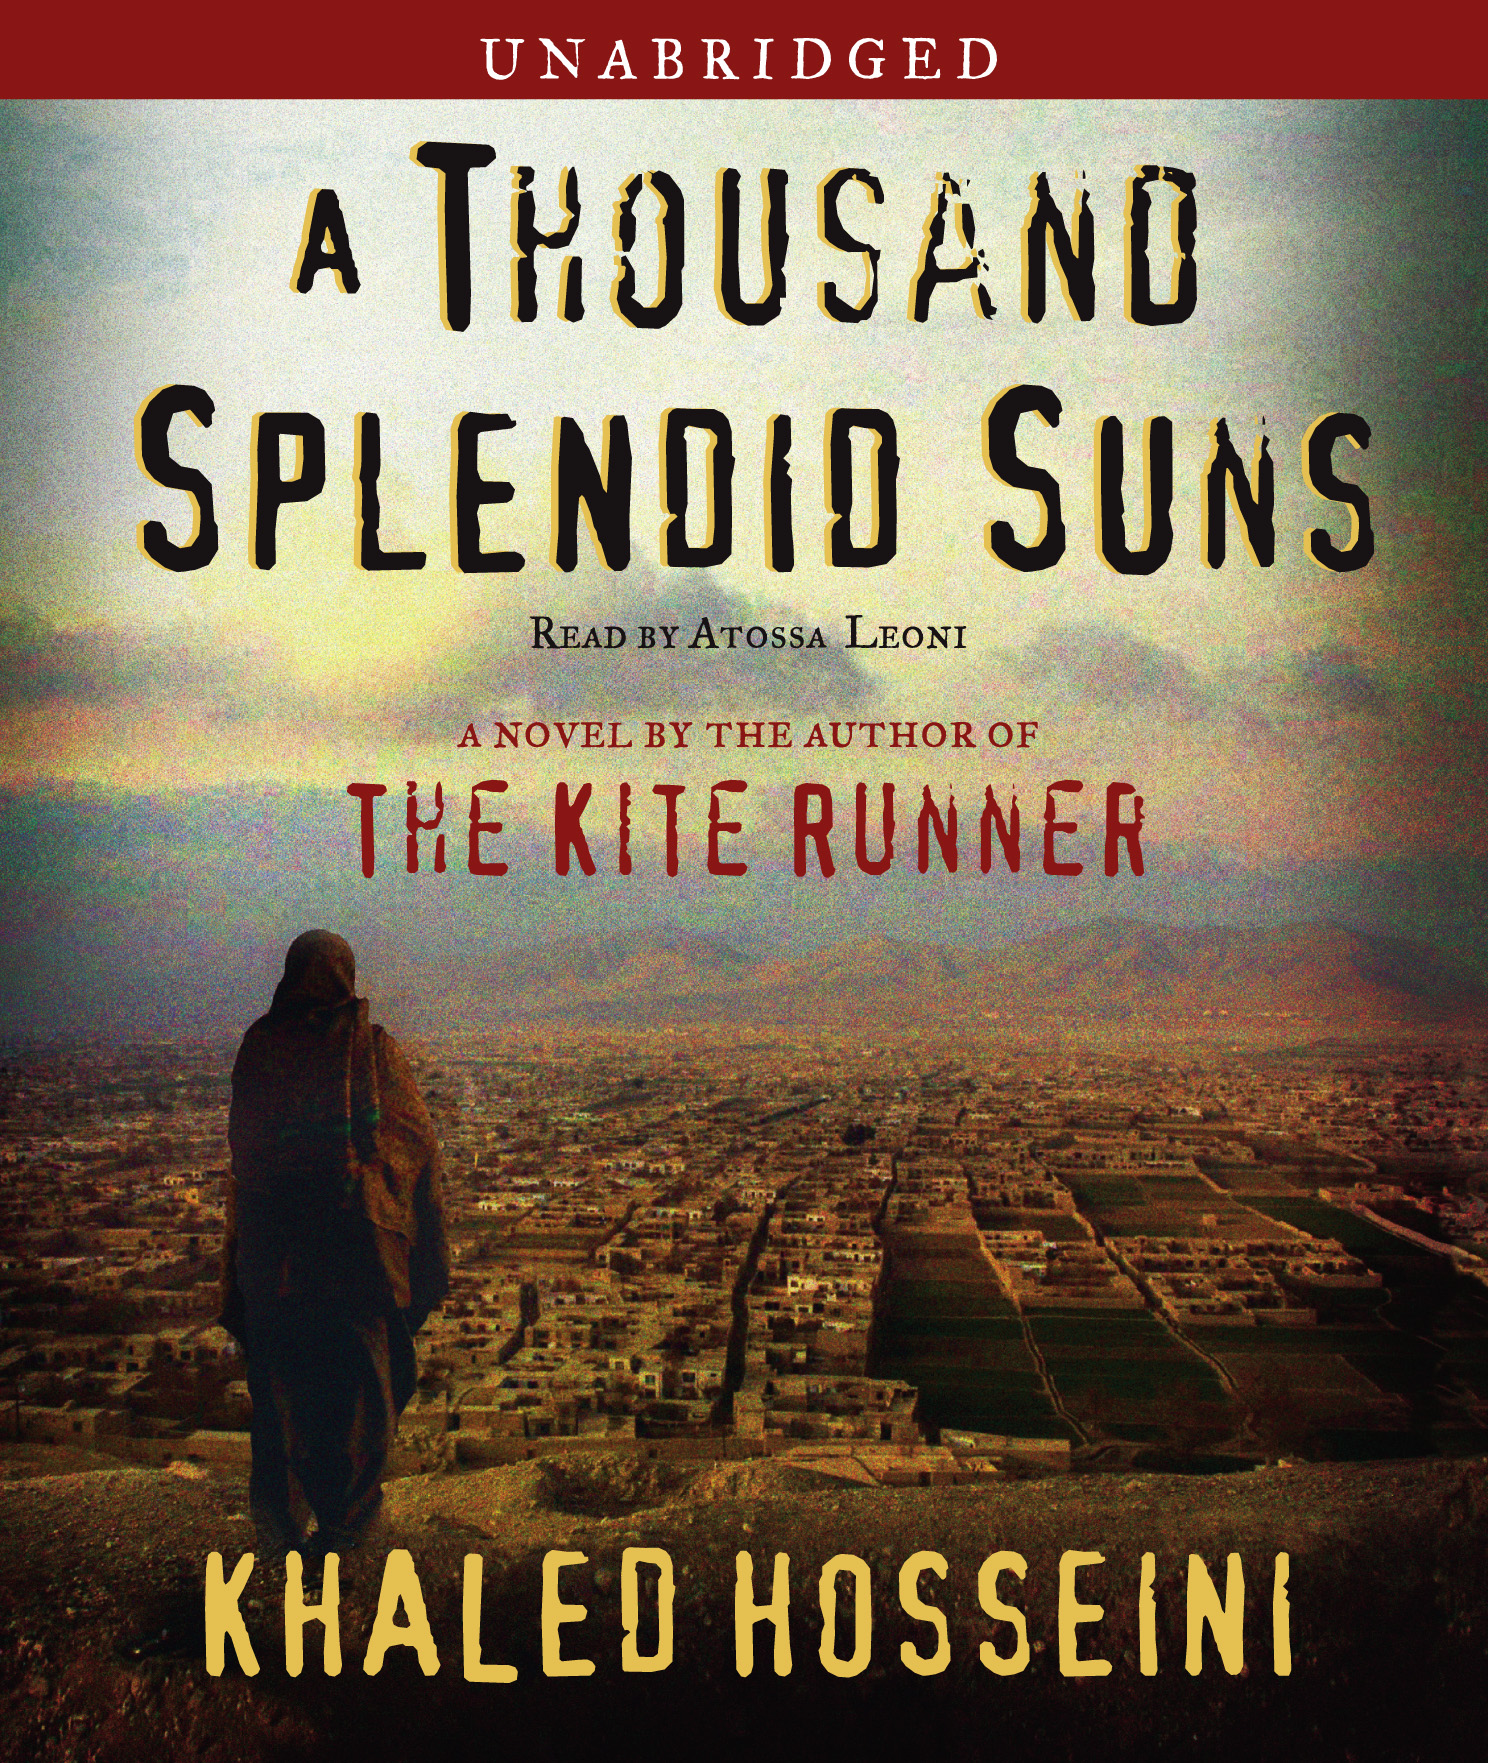 A Thousand Splendid Suns Novel by Khaled Hosseini